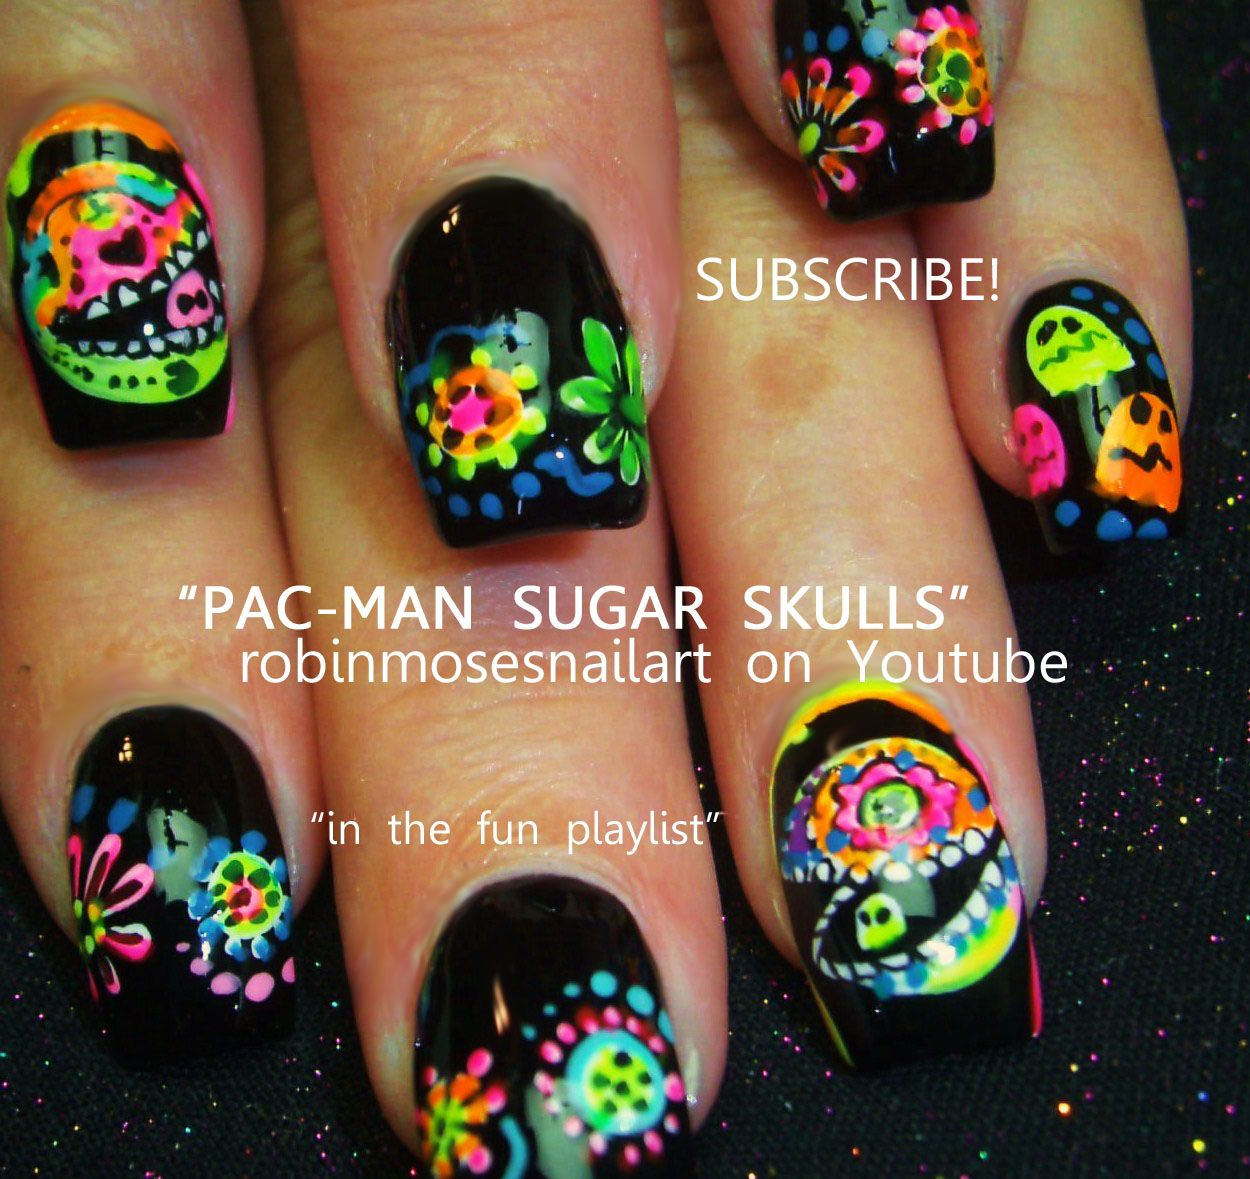 Nail-art by Robin Moses day of the dead PACMAN http://www.youtube.com/watch?v=sucE2MtyKlE - Skull nails, Sugar skull nails, Skull nail designs - 웹